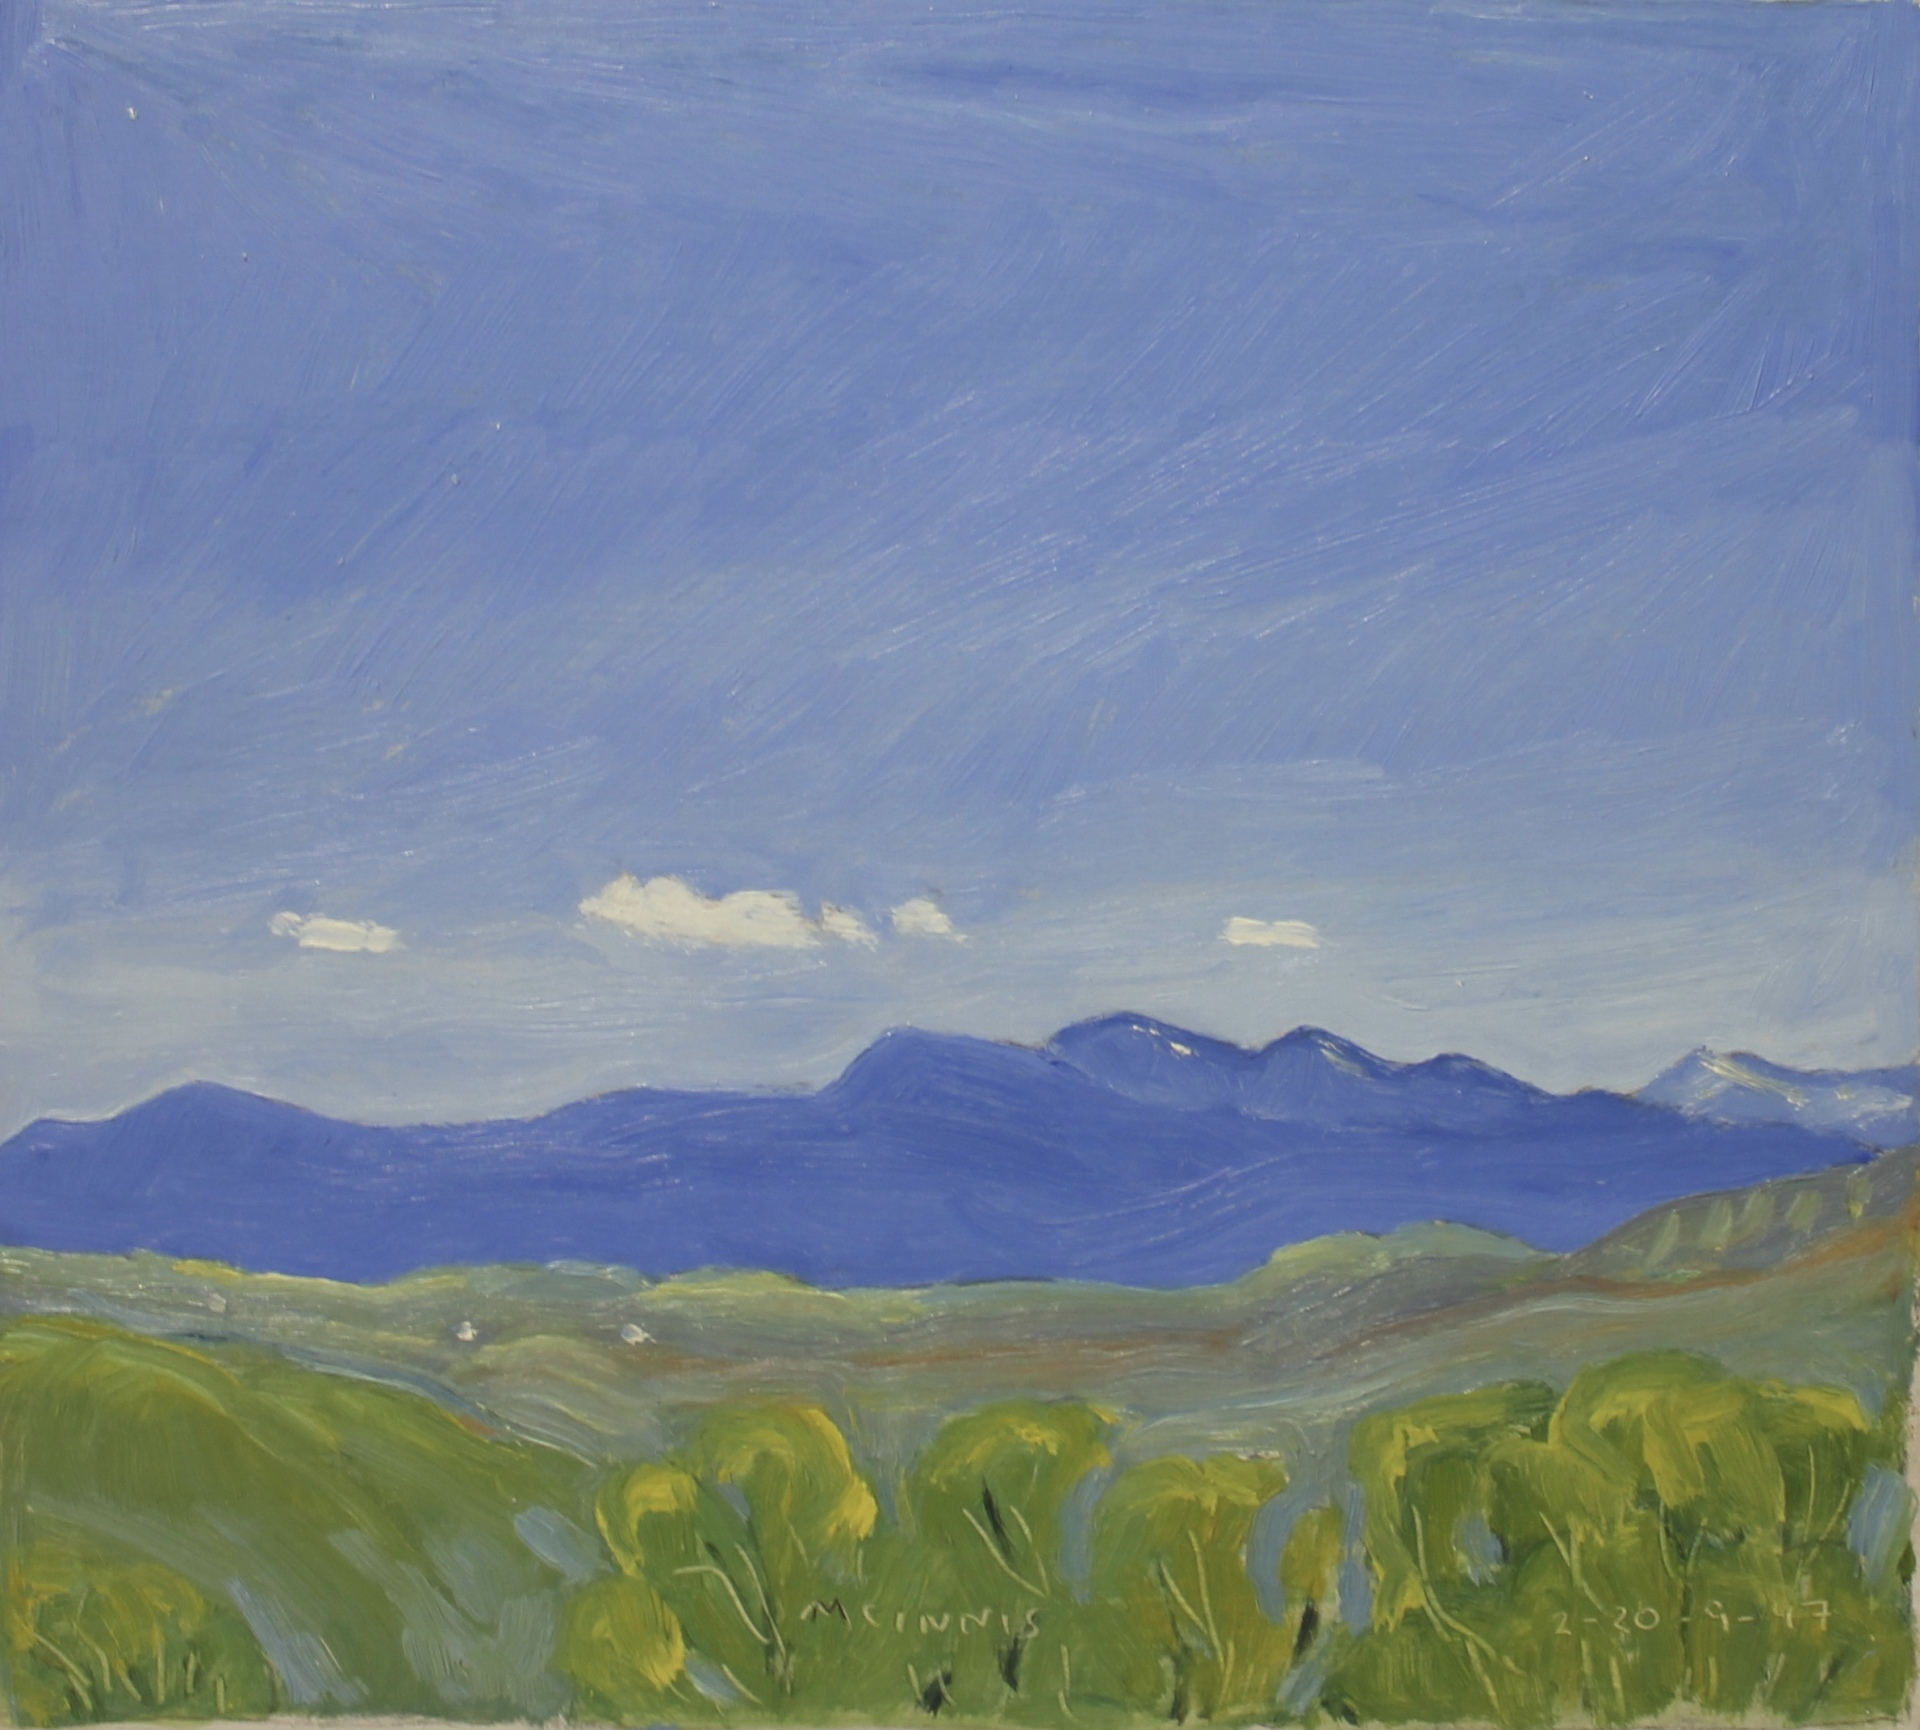 GREEN TREES AND MOUNTAINS - 9X10 - OIL ON PANEL - 1997